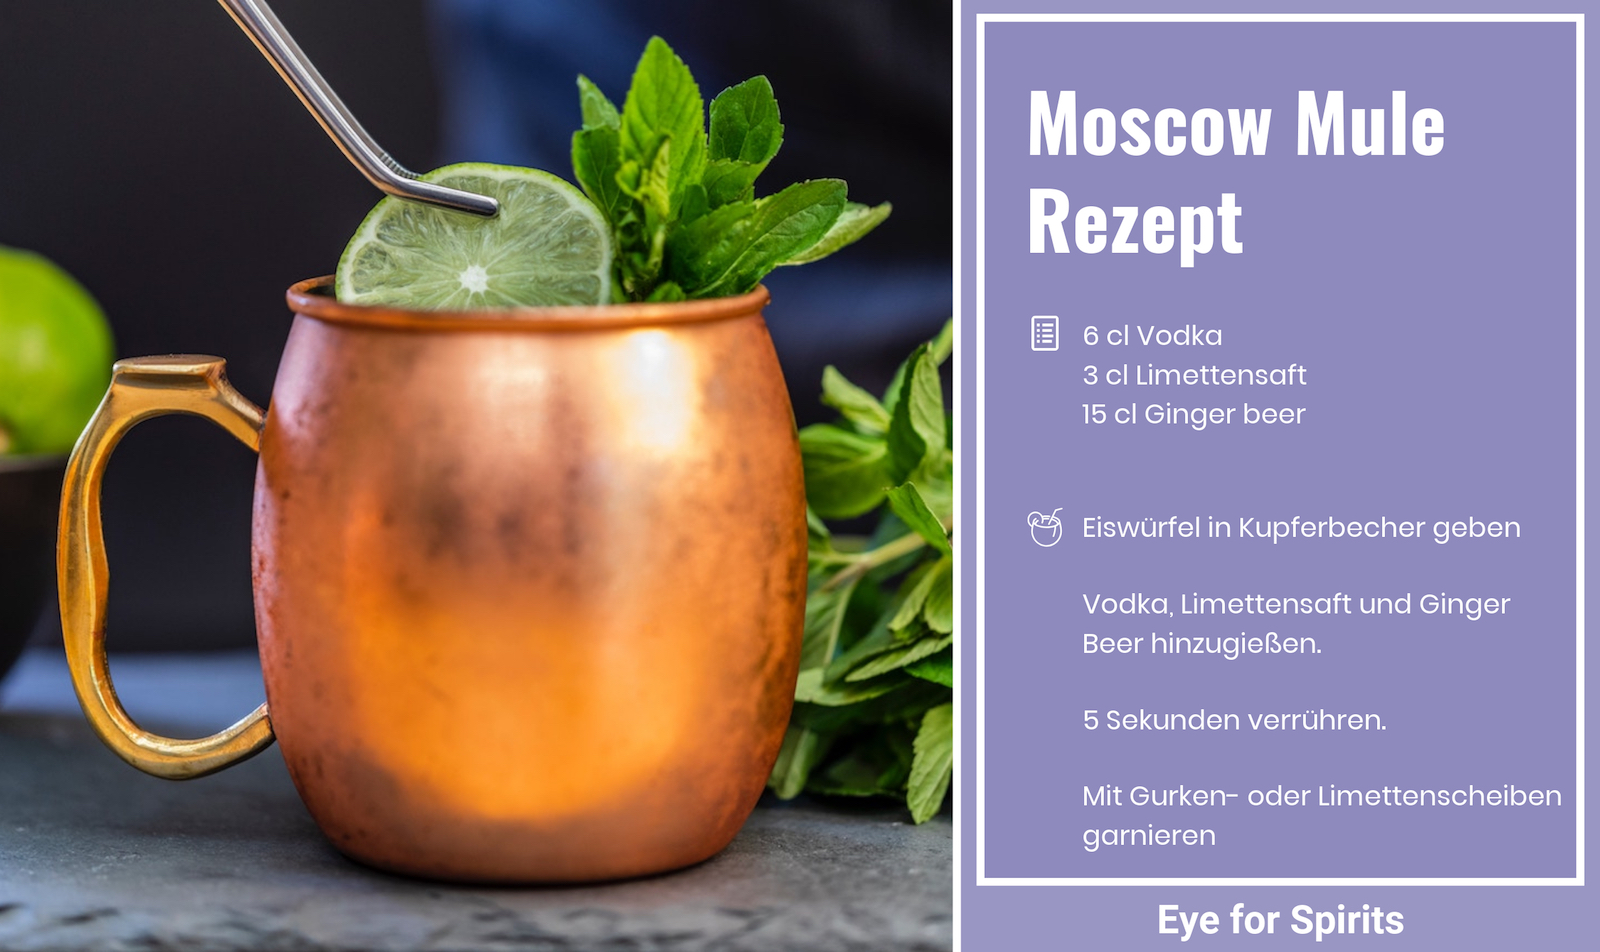 moscow mule mit diesem rezept perfekt zubereiten eye for spirits. Black Bedroom Furniture Sets. Home Design Ideas